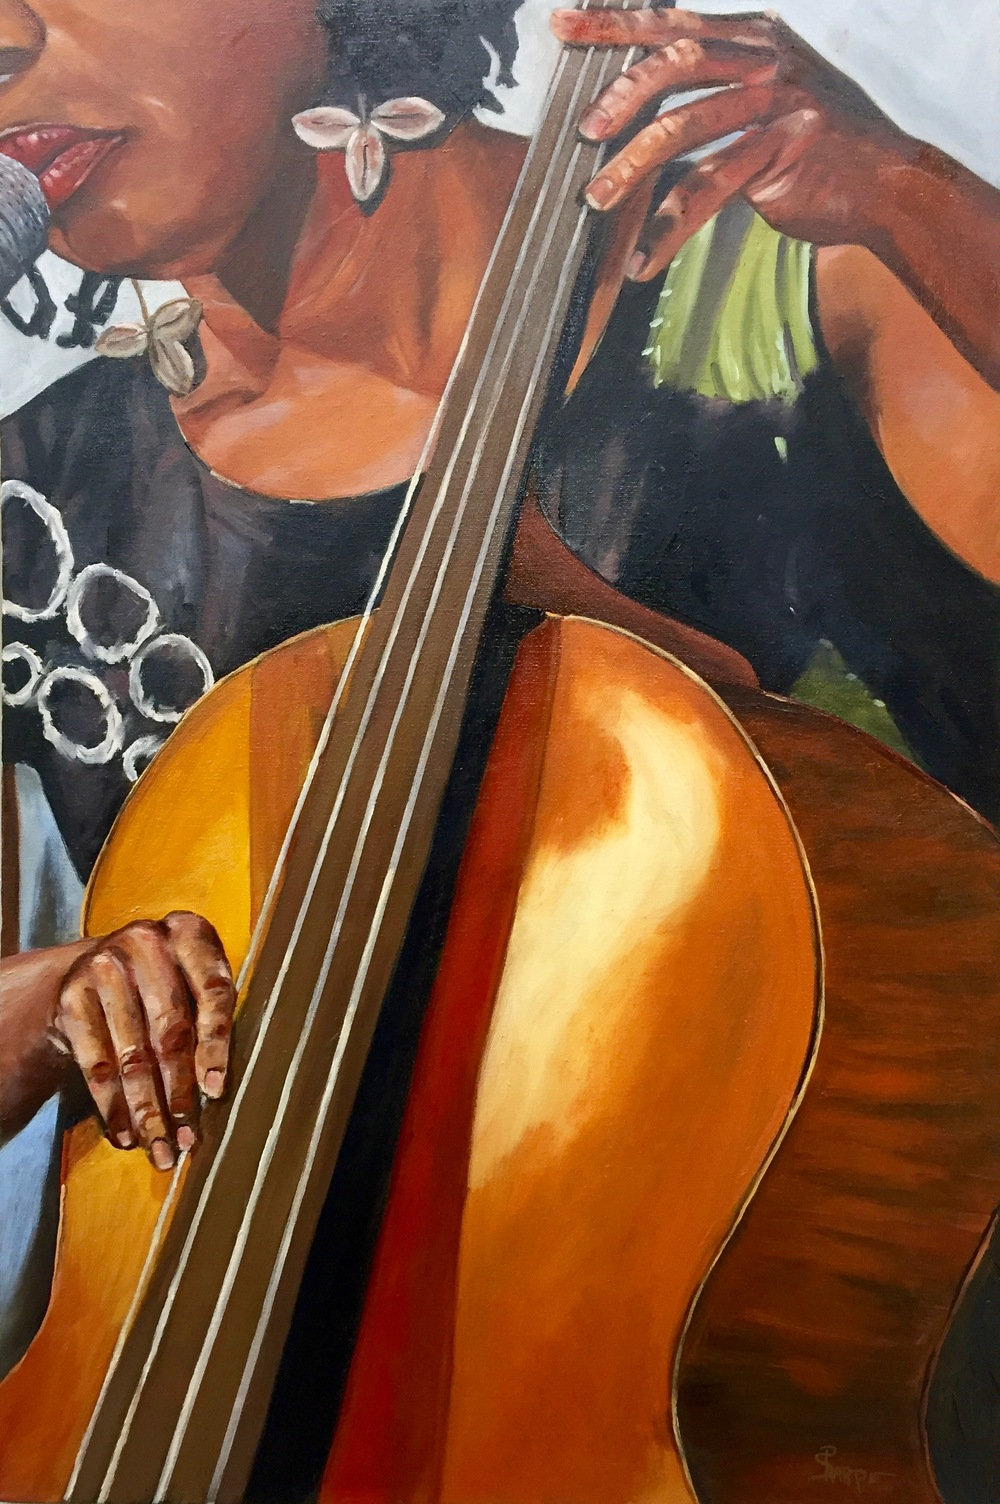 jazz-singer-cello-oil-painting-phyllis-sharep-IMG_1930.jpg